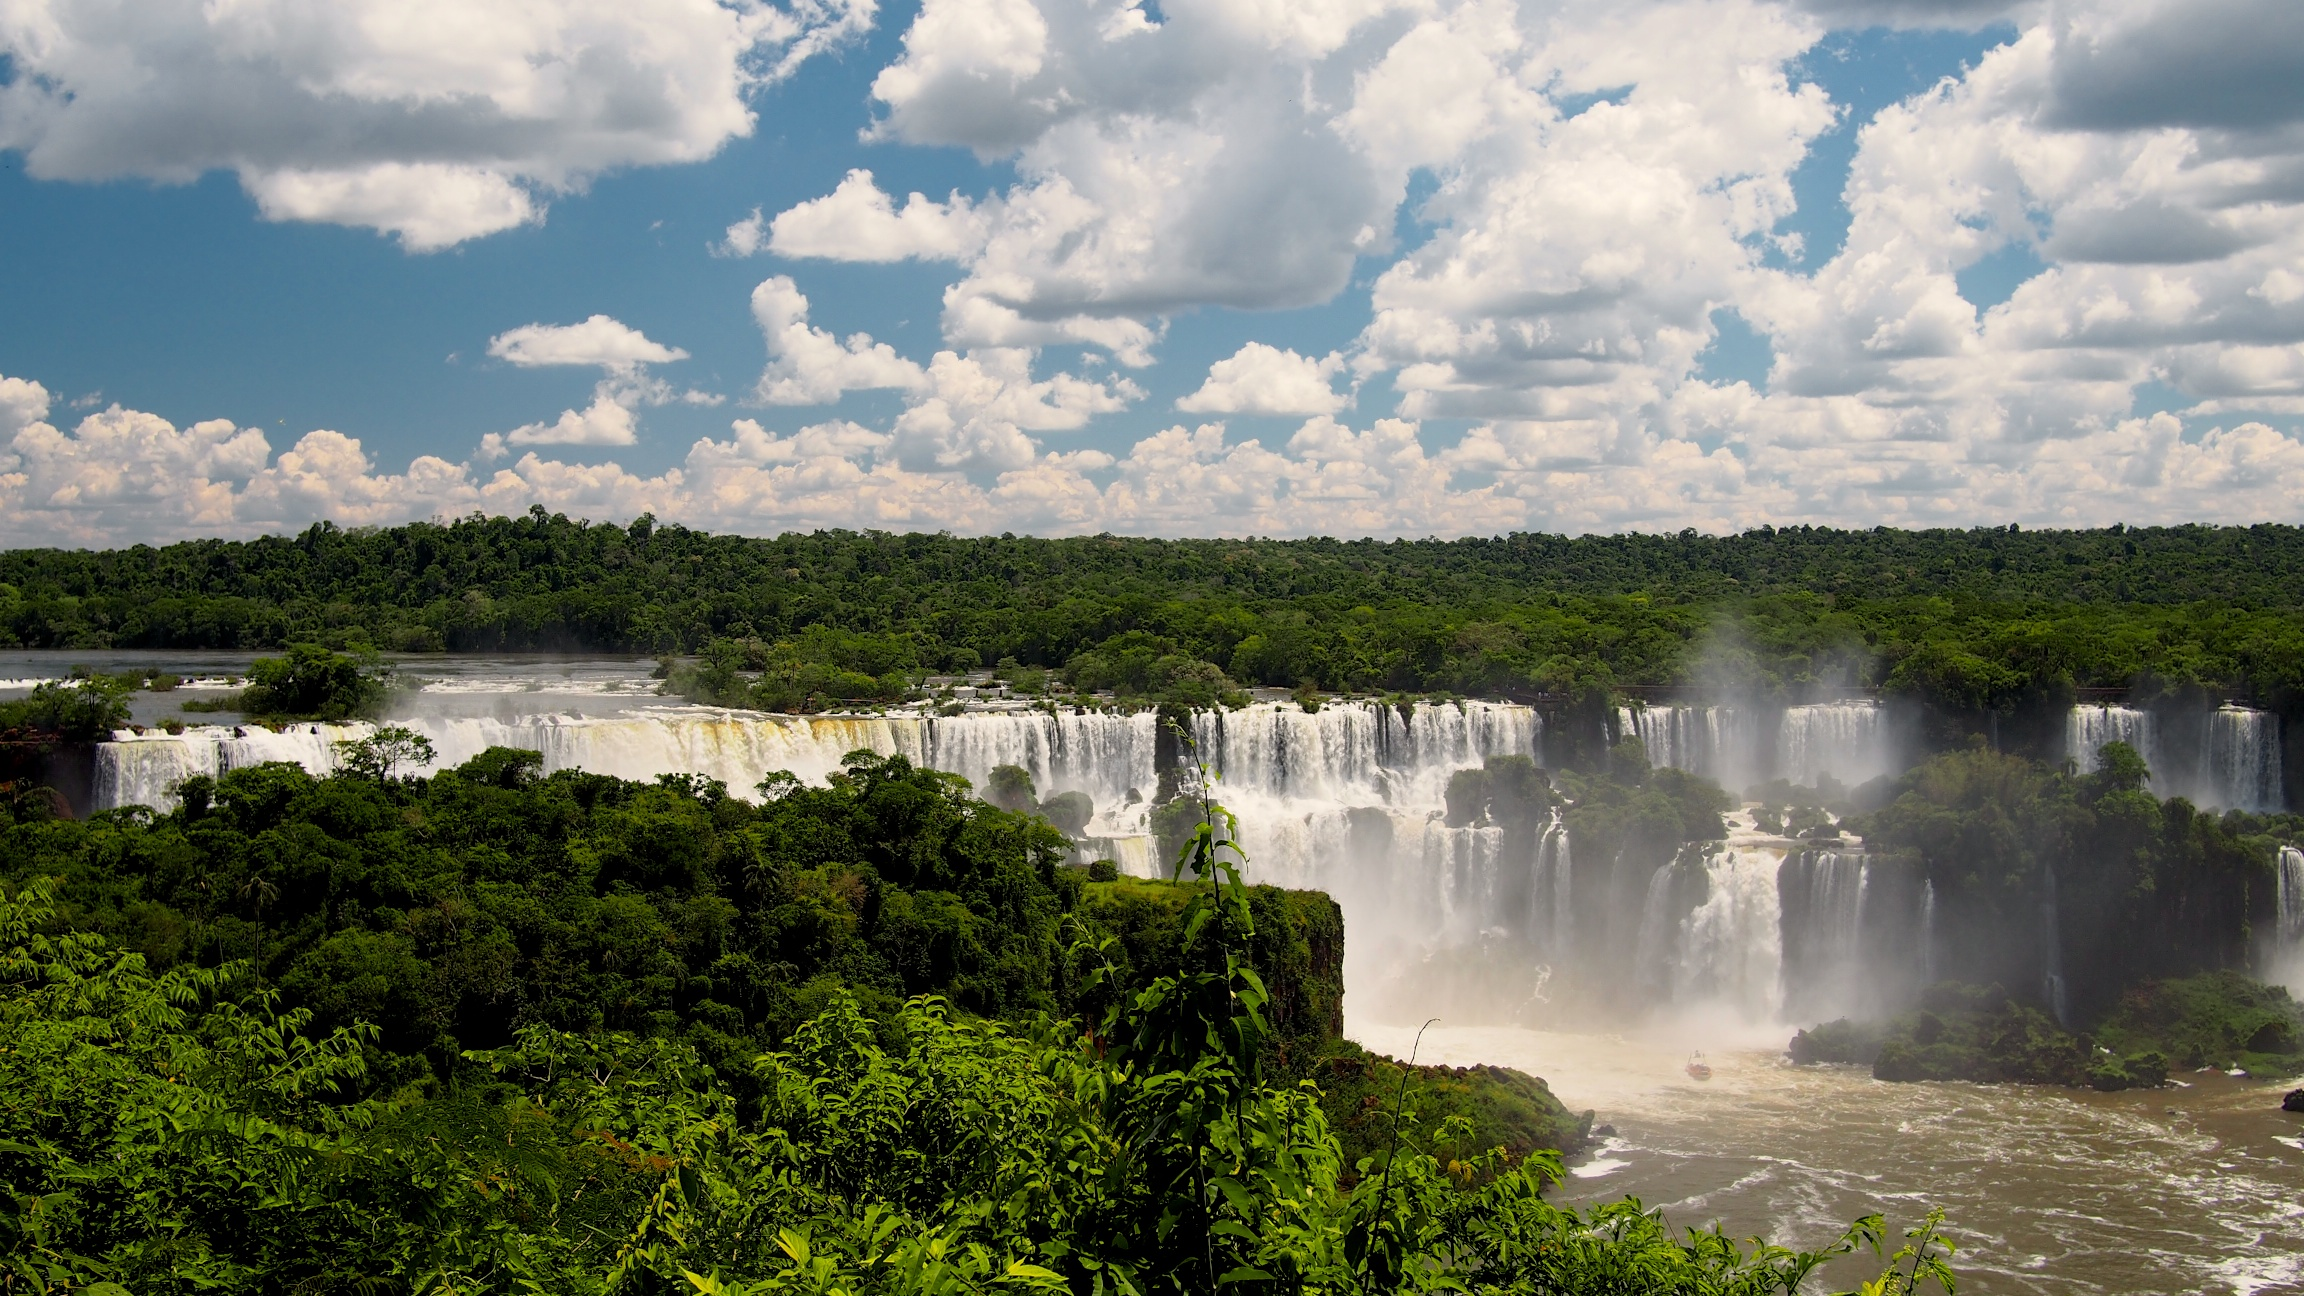 Looking out towards the Argentinian side of the falls from Brazil